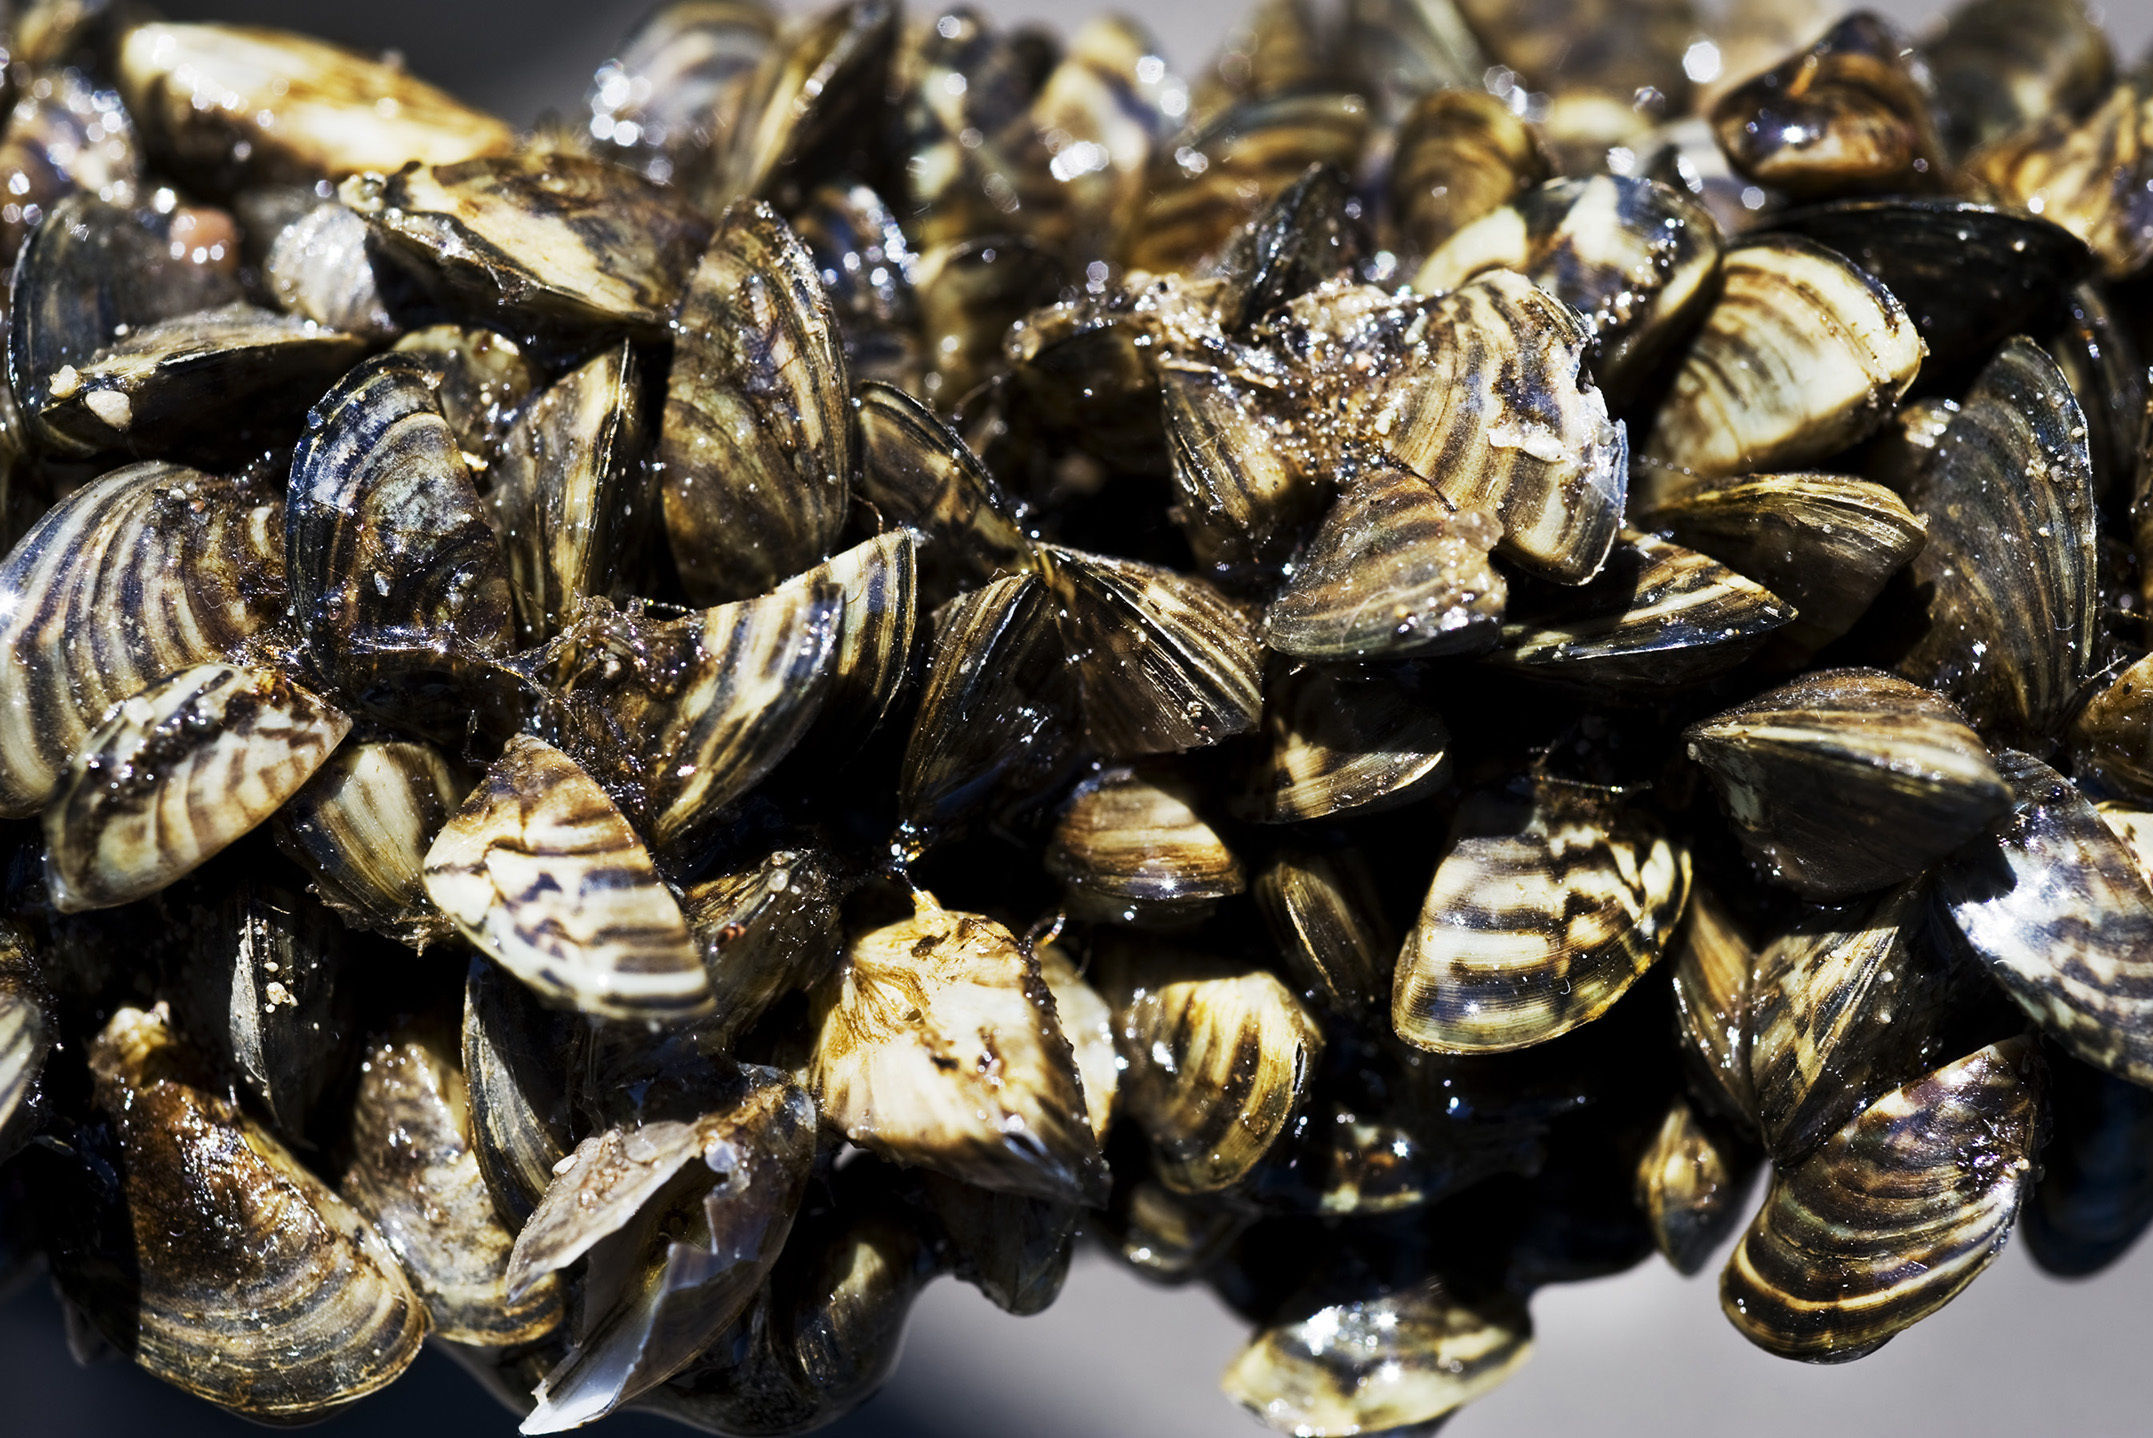 What are Zebra Mussels?